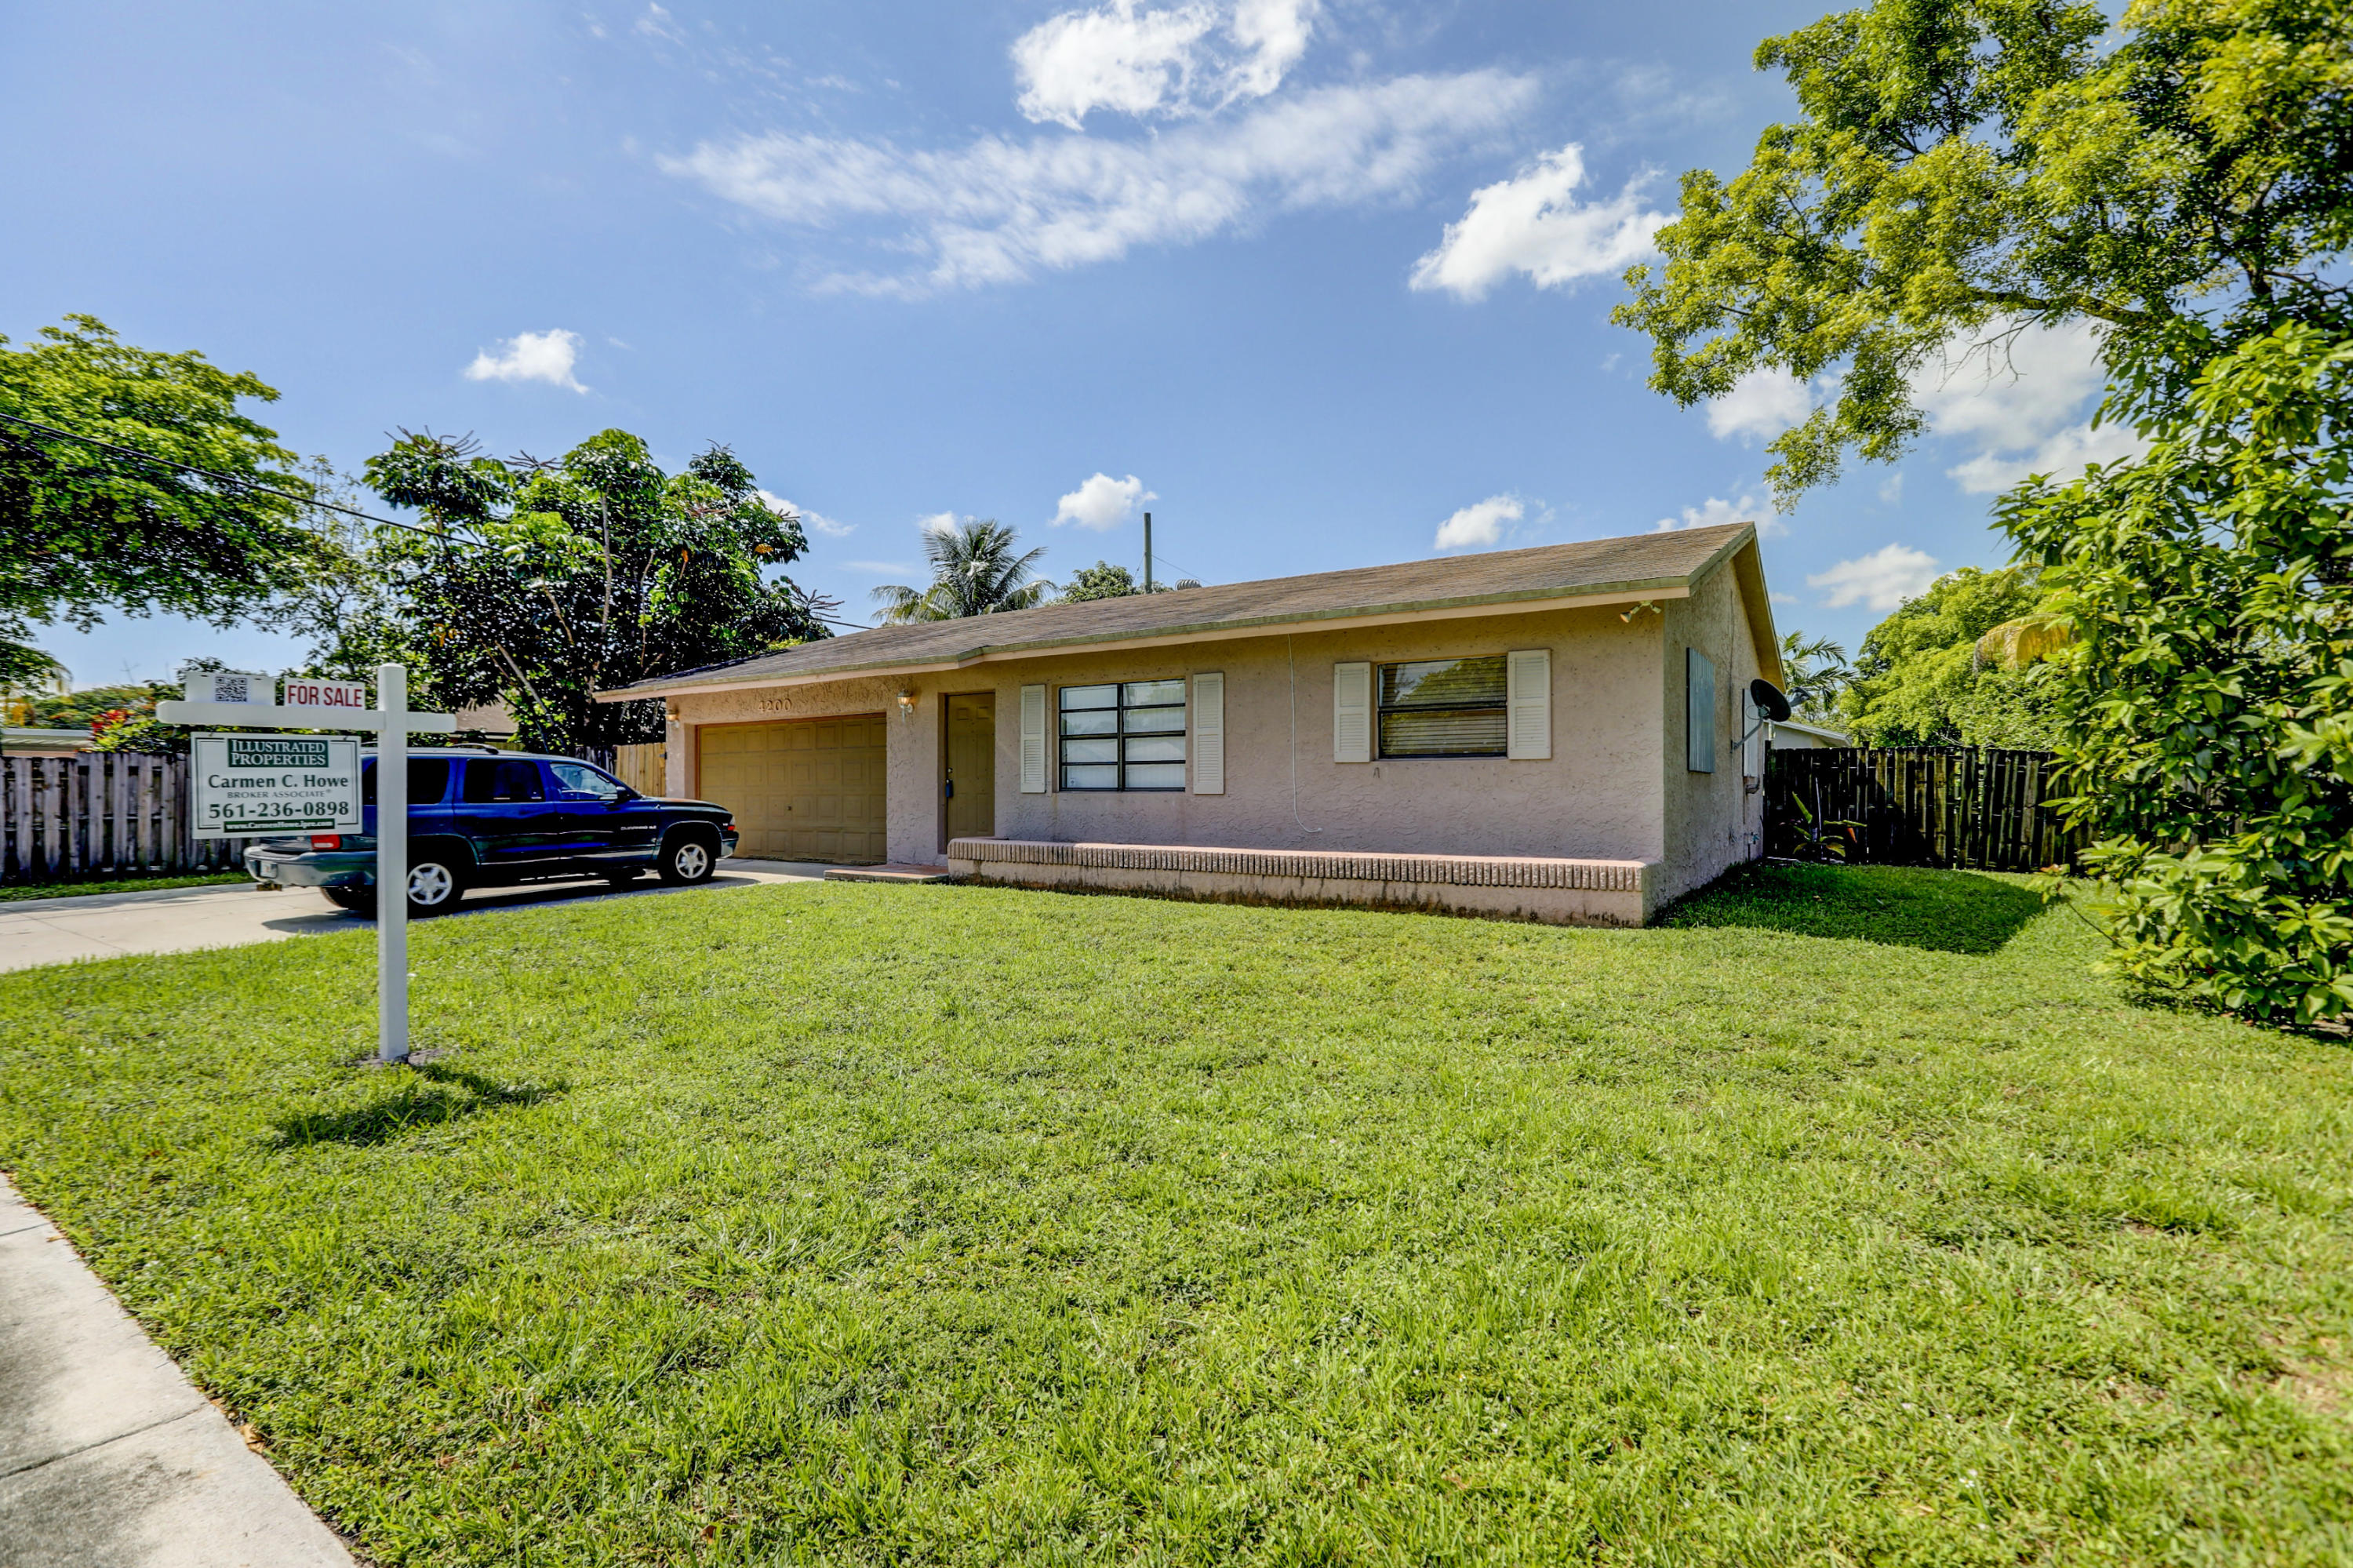 Home for sale in Davie Little Ranches Davie Florida